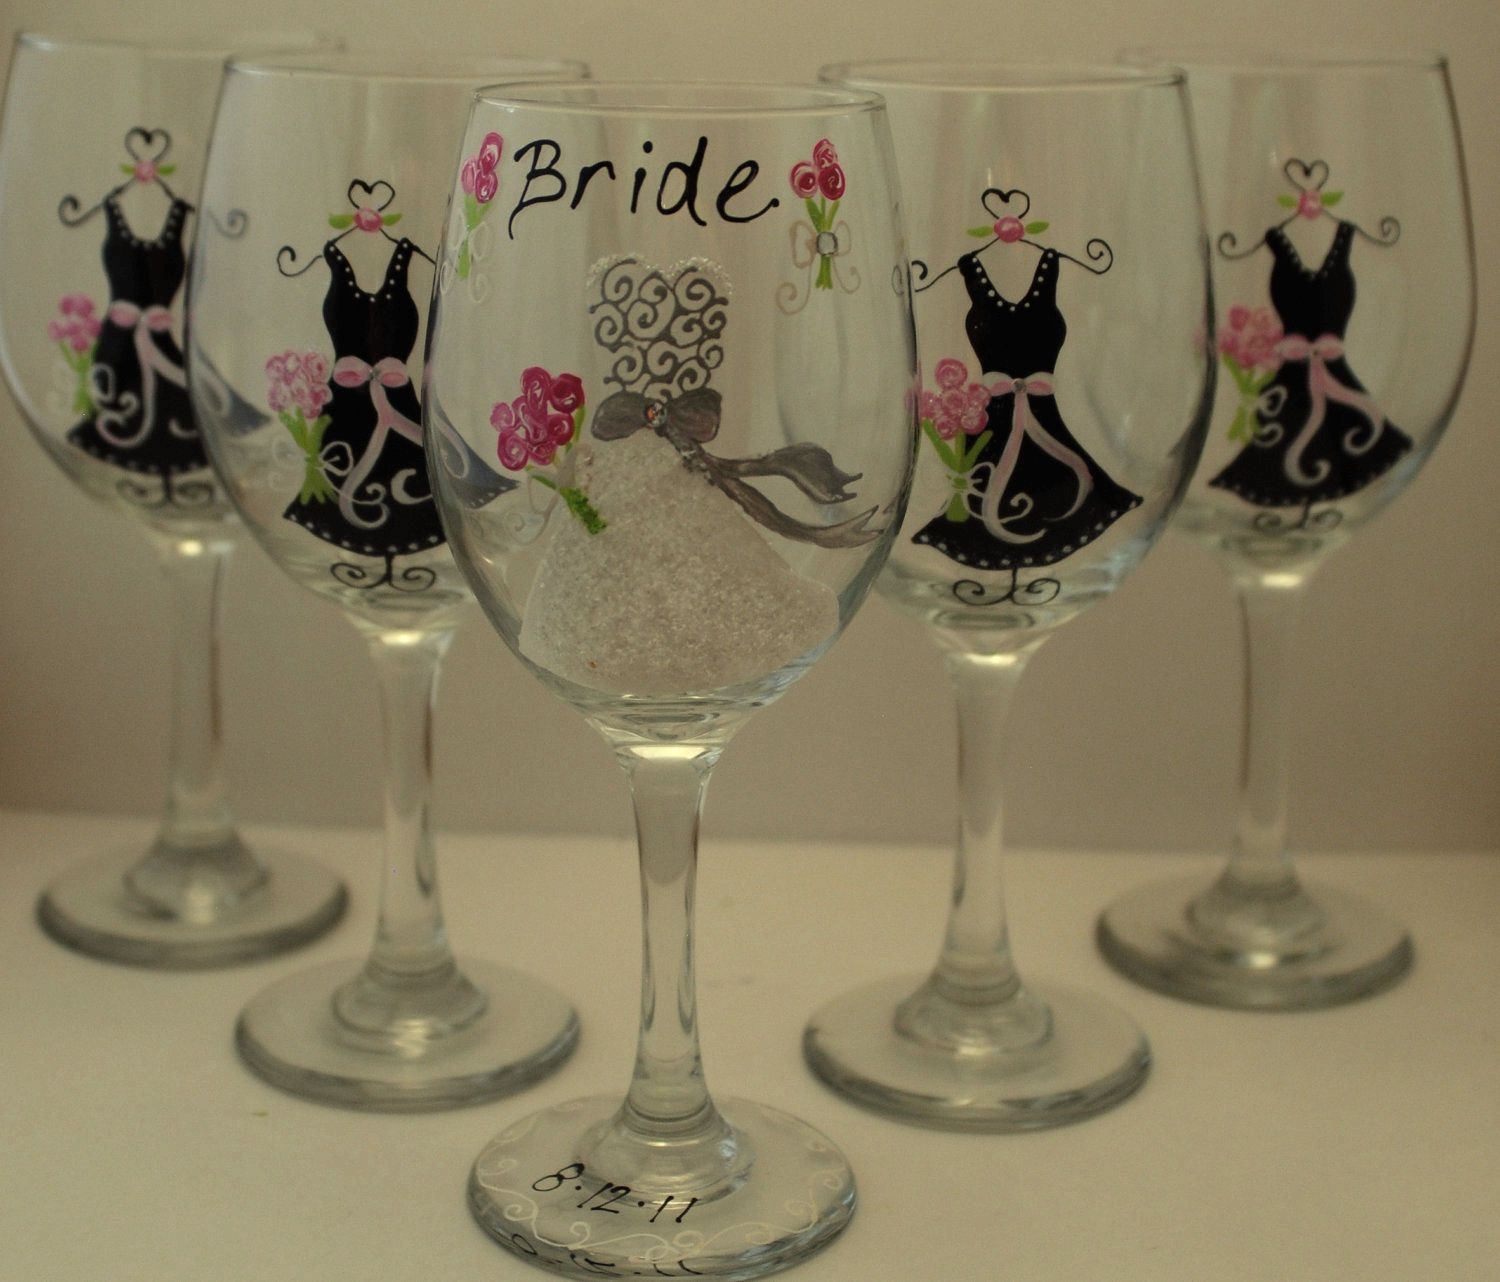 How to decorate wine glasses for bridesmaids - Custom Hand Painted 5 Wedding Wine Glasses Bridal Party And Unique Bridesmaid Glasses Wedding Favor Gift Each